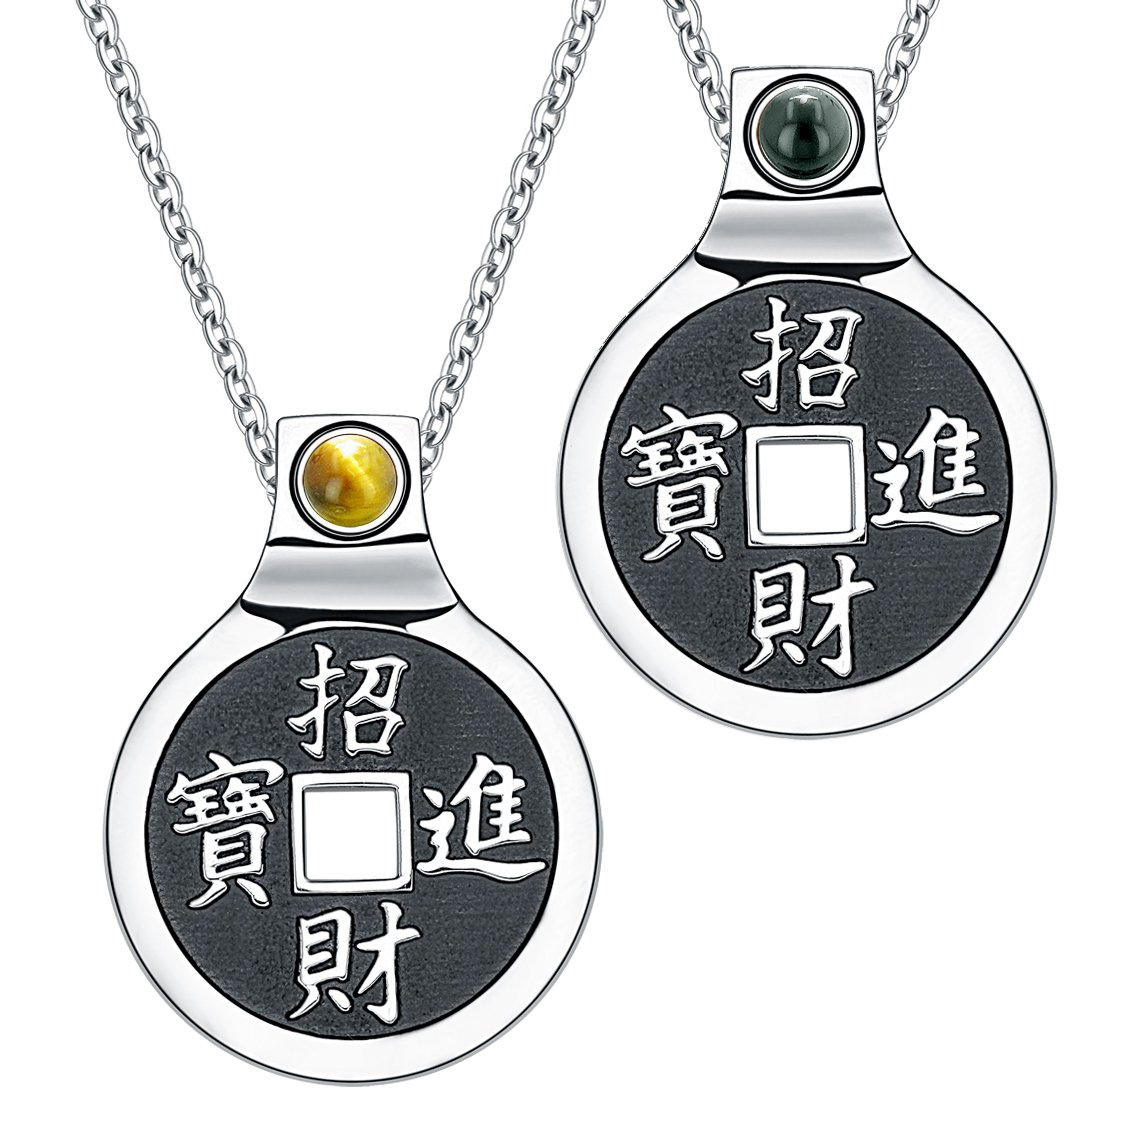 Yin Yang Amulets Love Couple Feng Shui Lucky Coins Kanji Magic Tiger Eye Simulated Onyx Necklaces